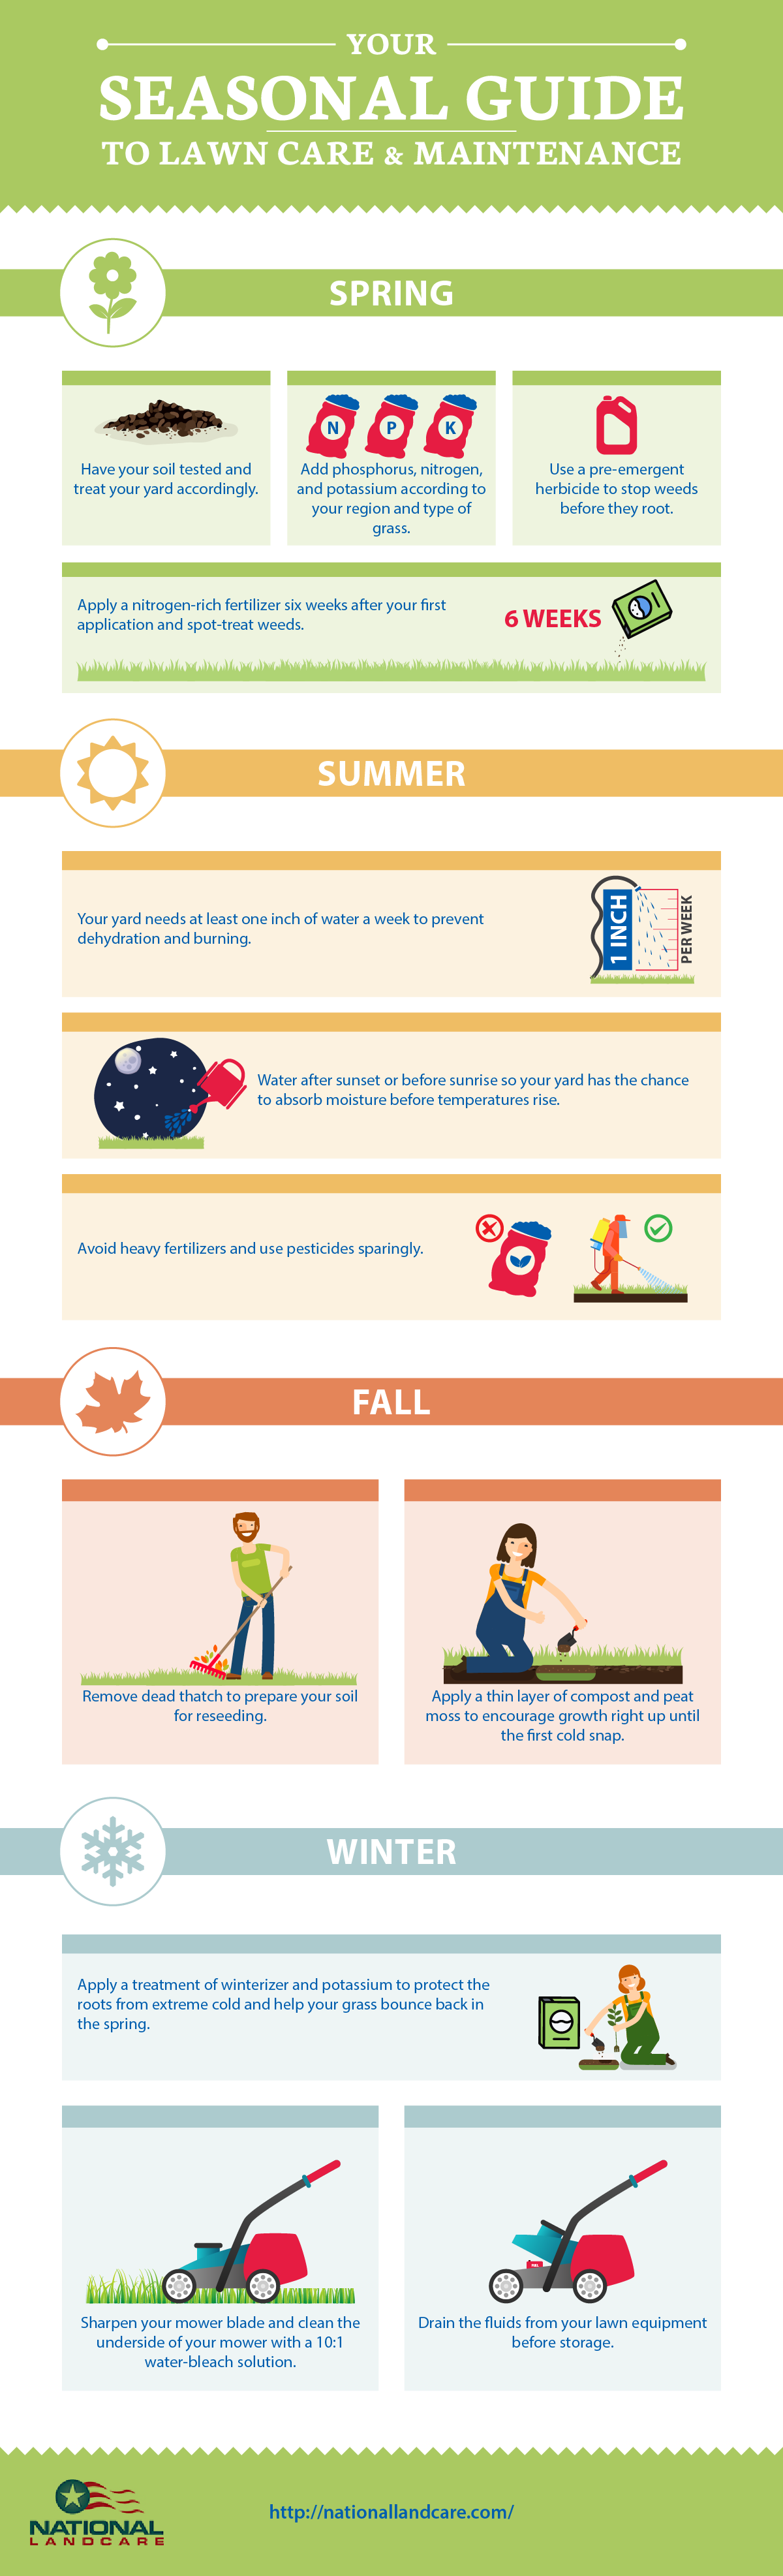 Your Seasonal Guide to Lawn Care